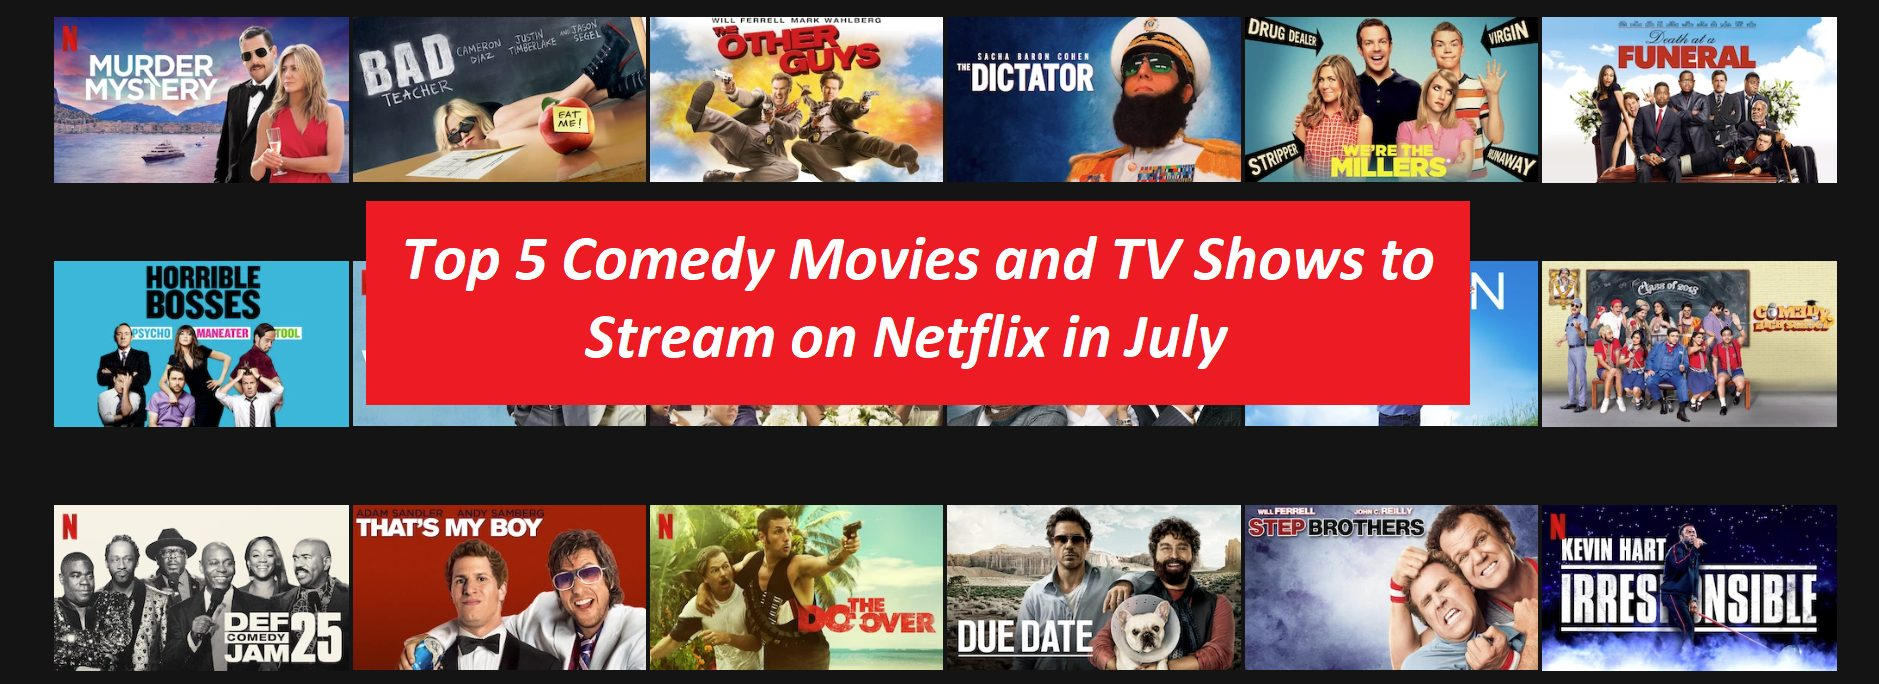 Netflix comedy recommendations